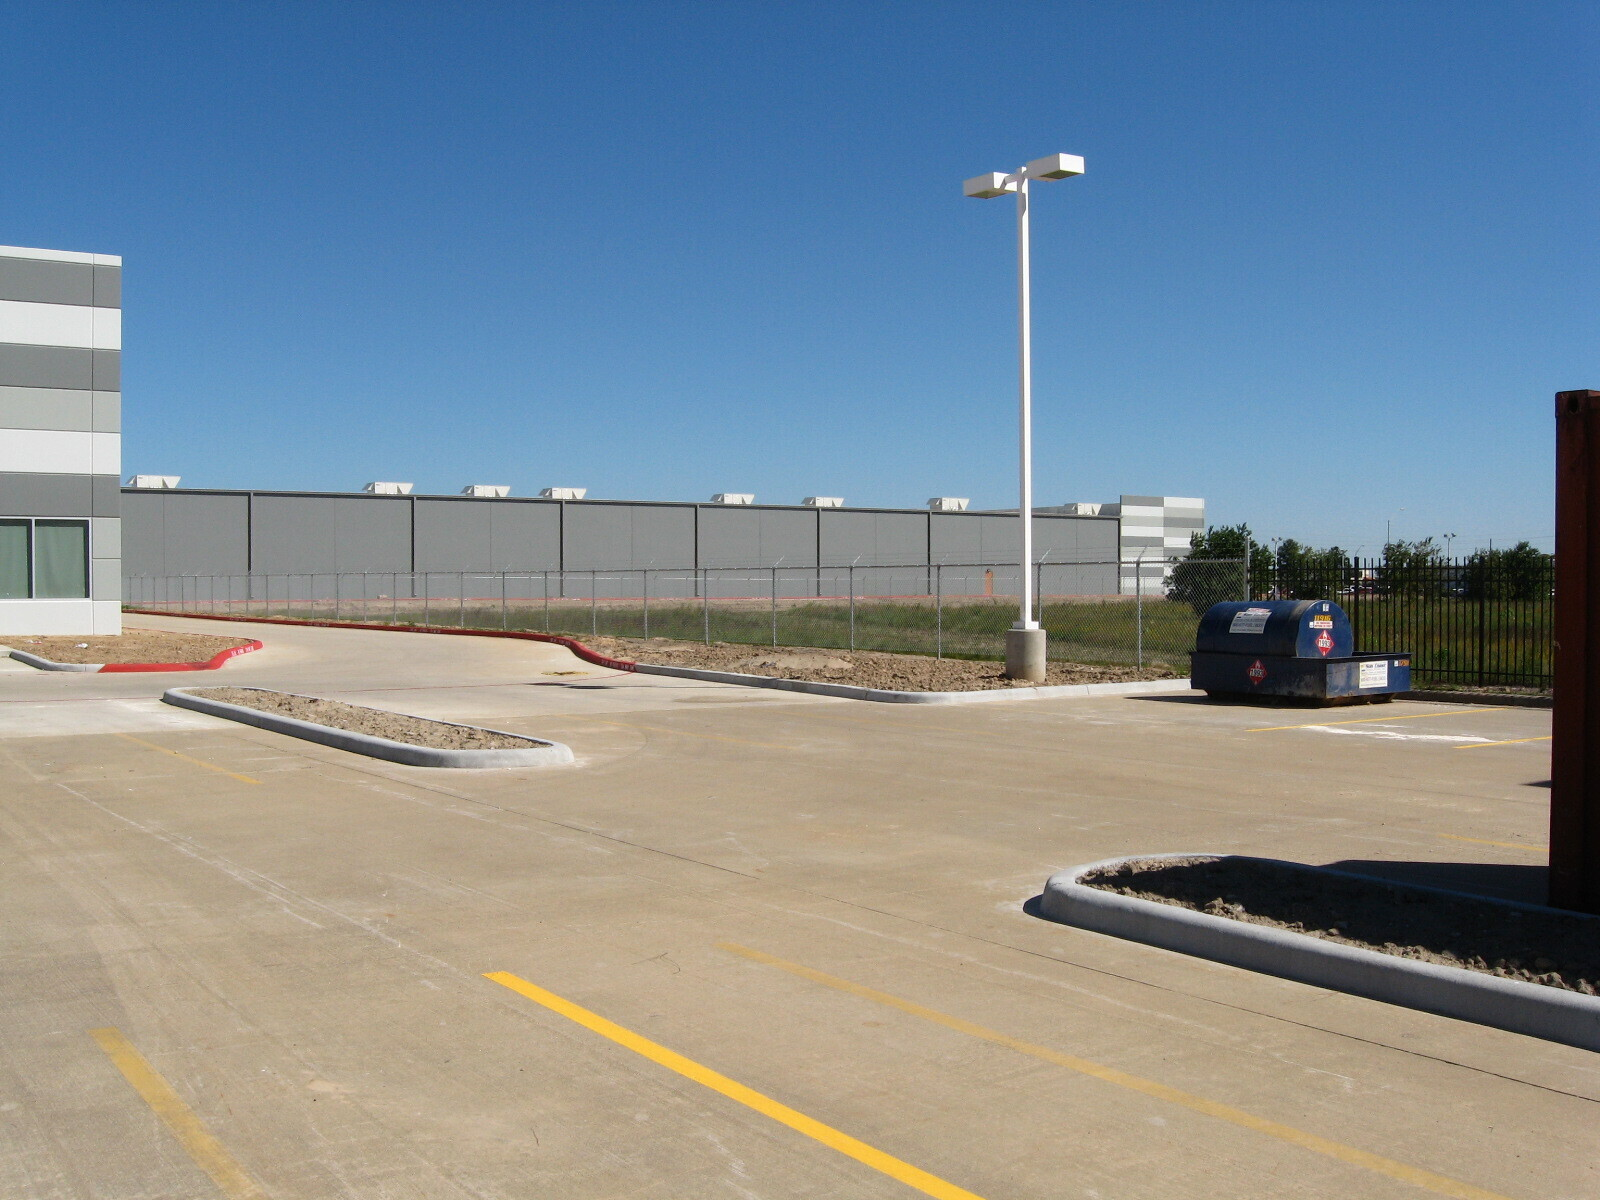 chain link fence at an industrial facility